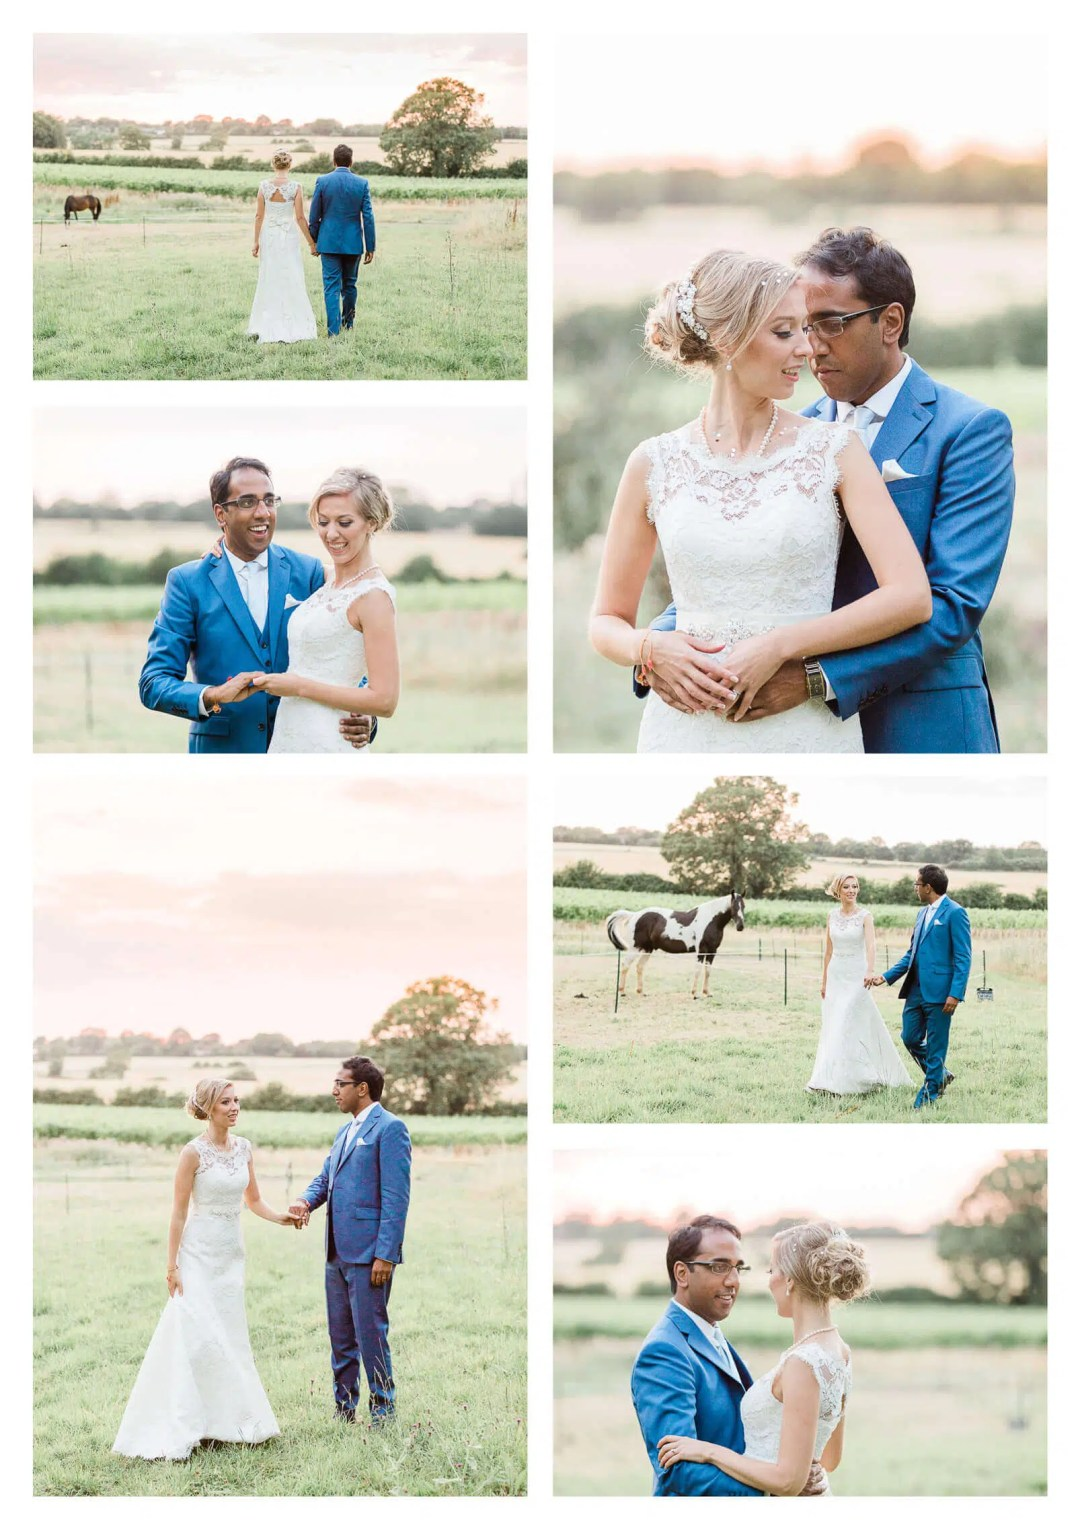 Baddow Park couple portraits with horses | Essex wedding photographer